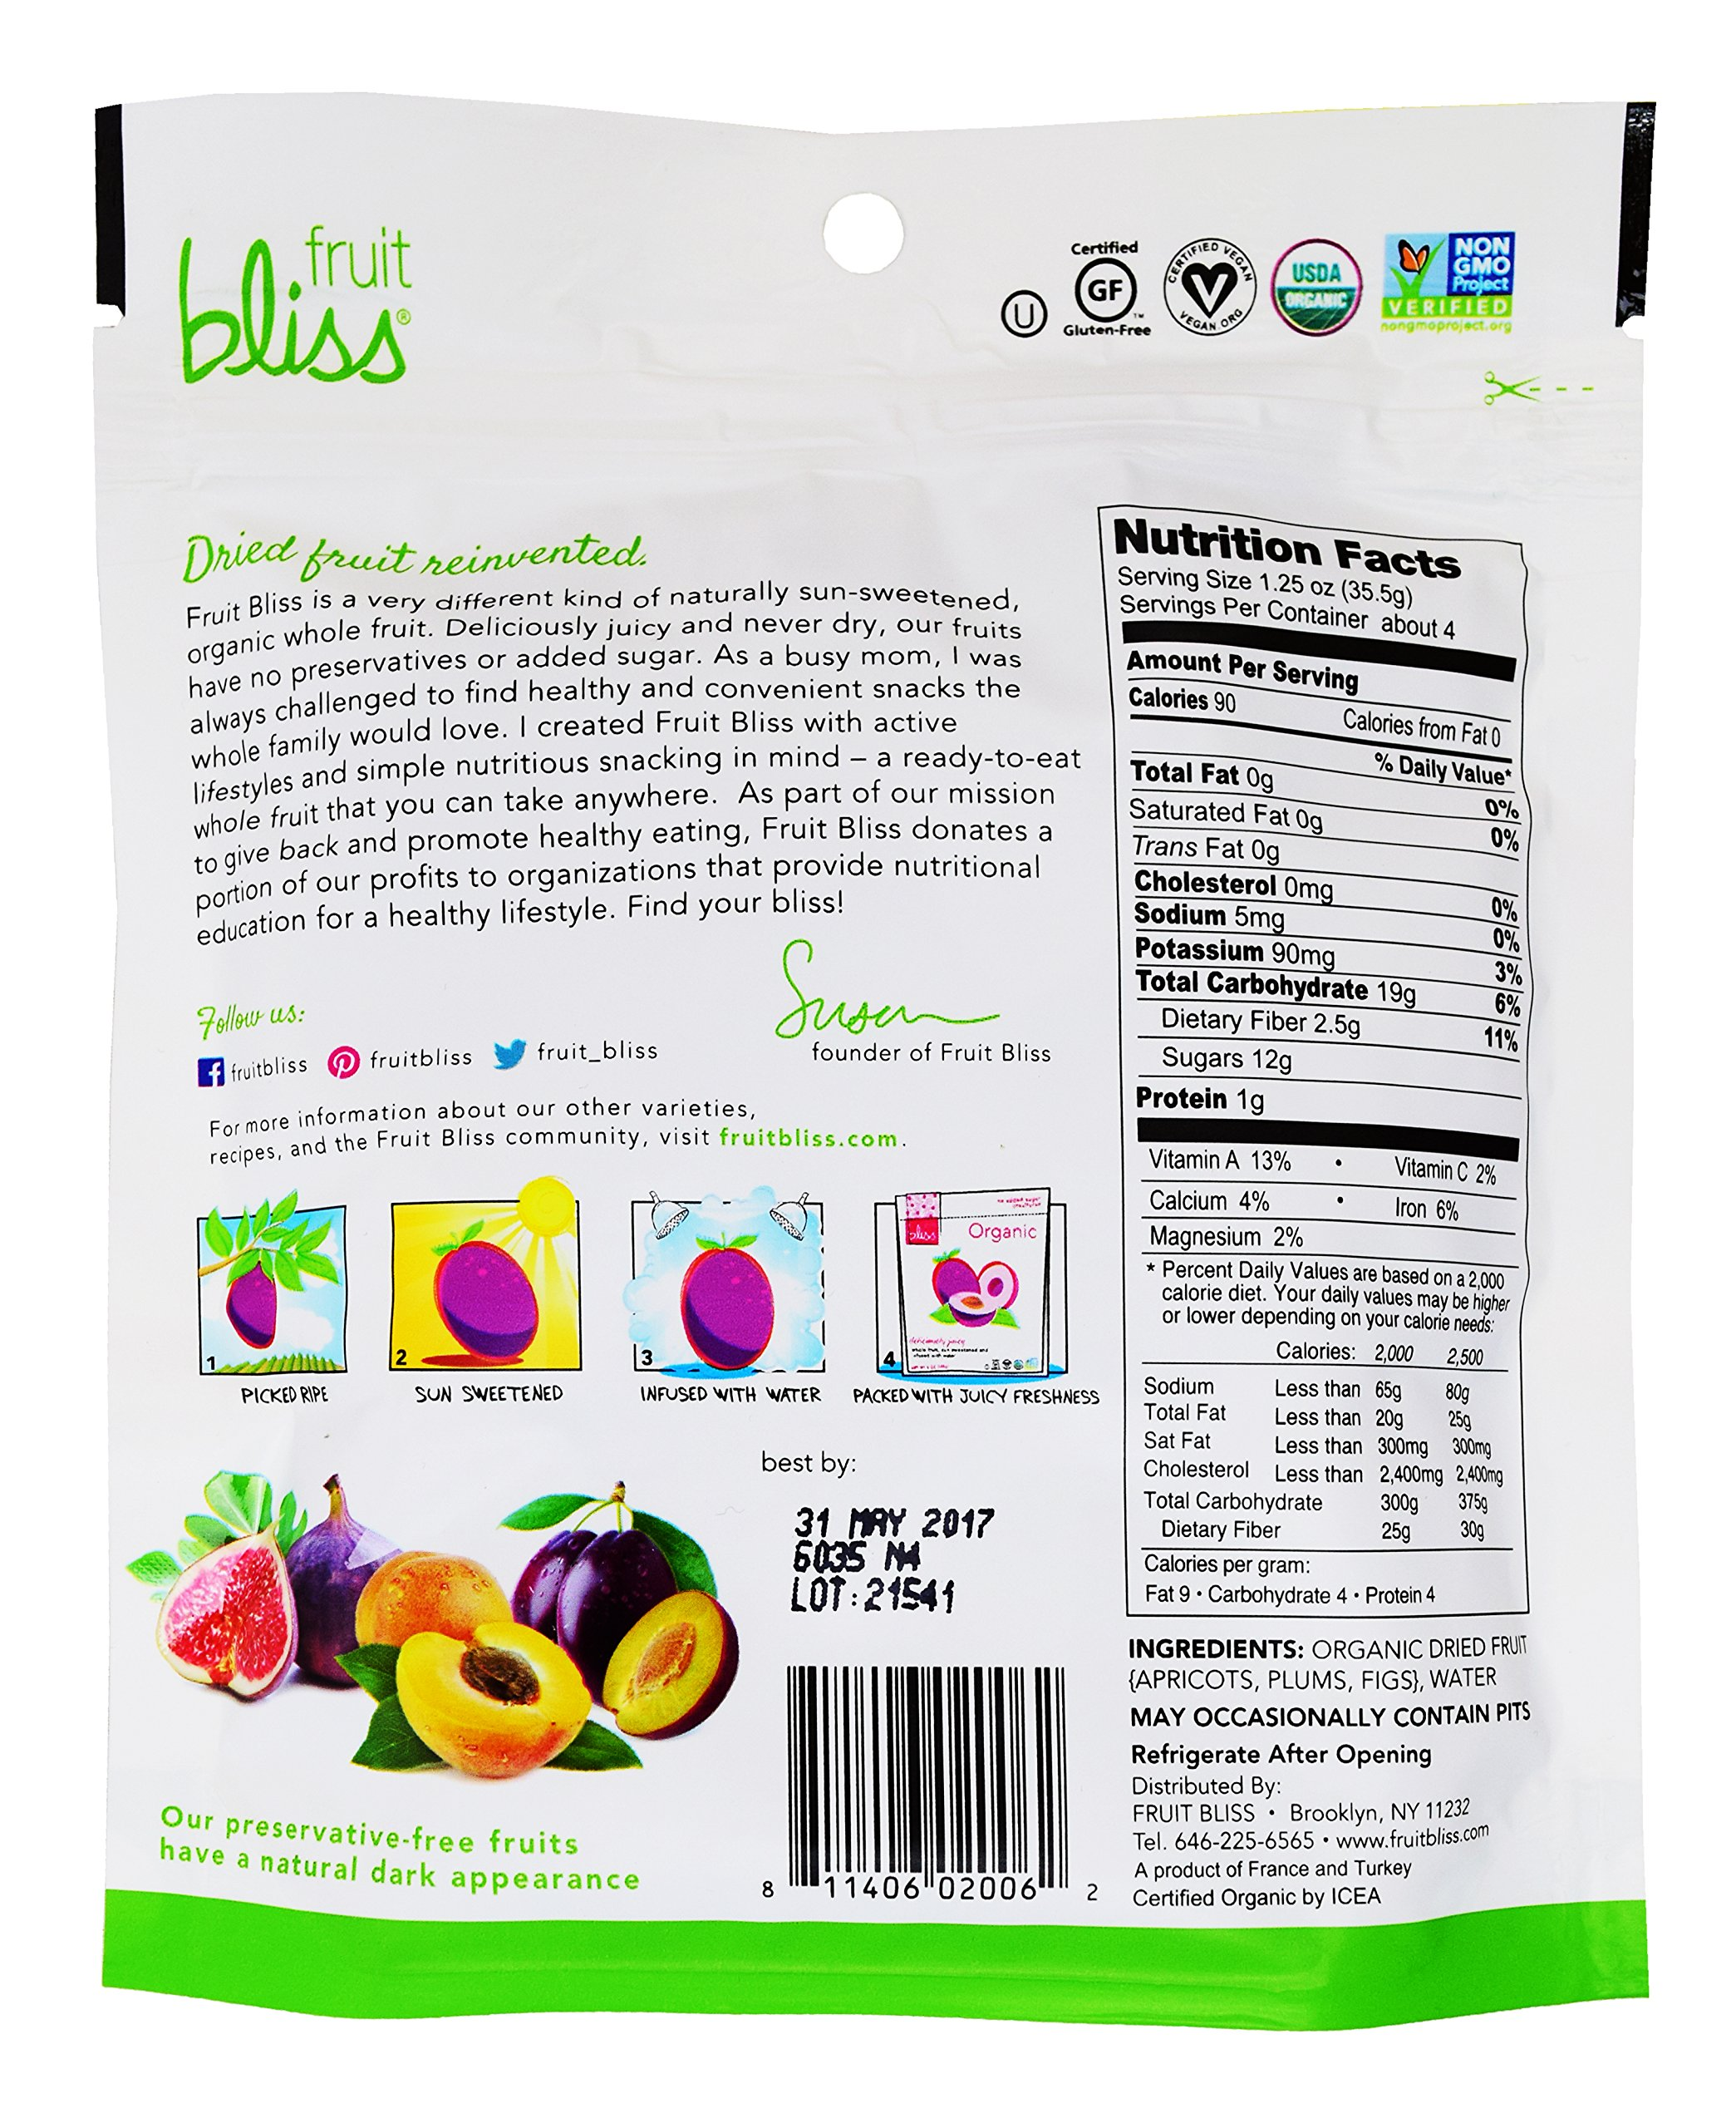 Fruit Bliss Organic Dried Fruit Medley, 5 oz, Pack of 6 by FRUIT BLISS (Image #2)